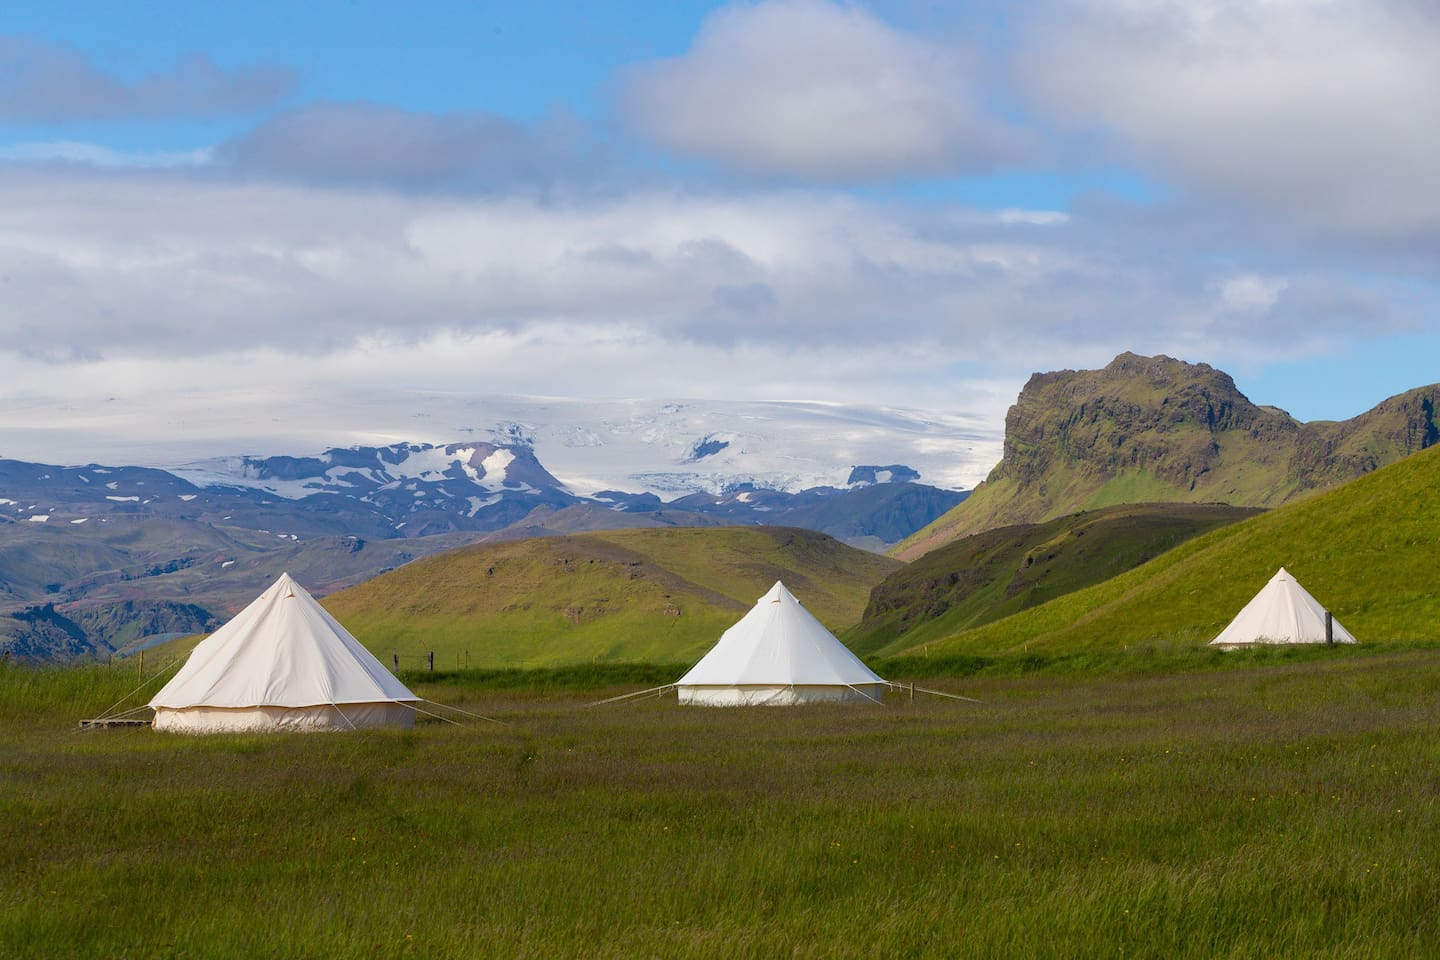 Glamping tents at the Farmhouse, in the background there is Myrdalsjokull glacier, with it´s famous Volcano Katla.